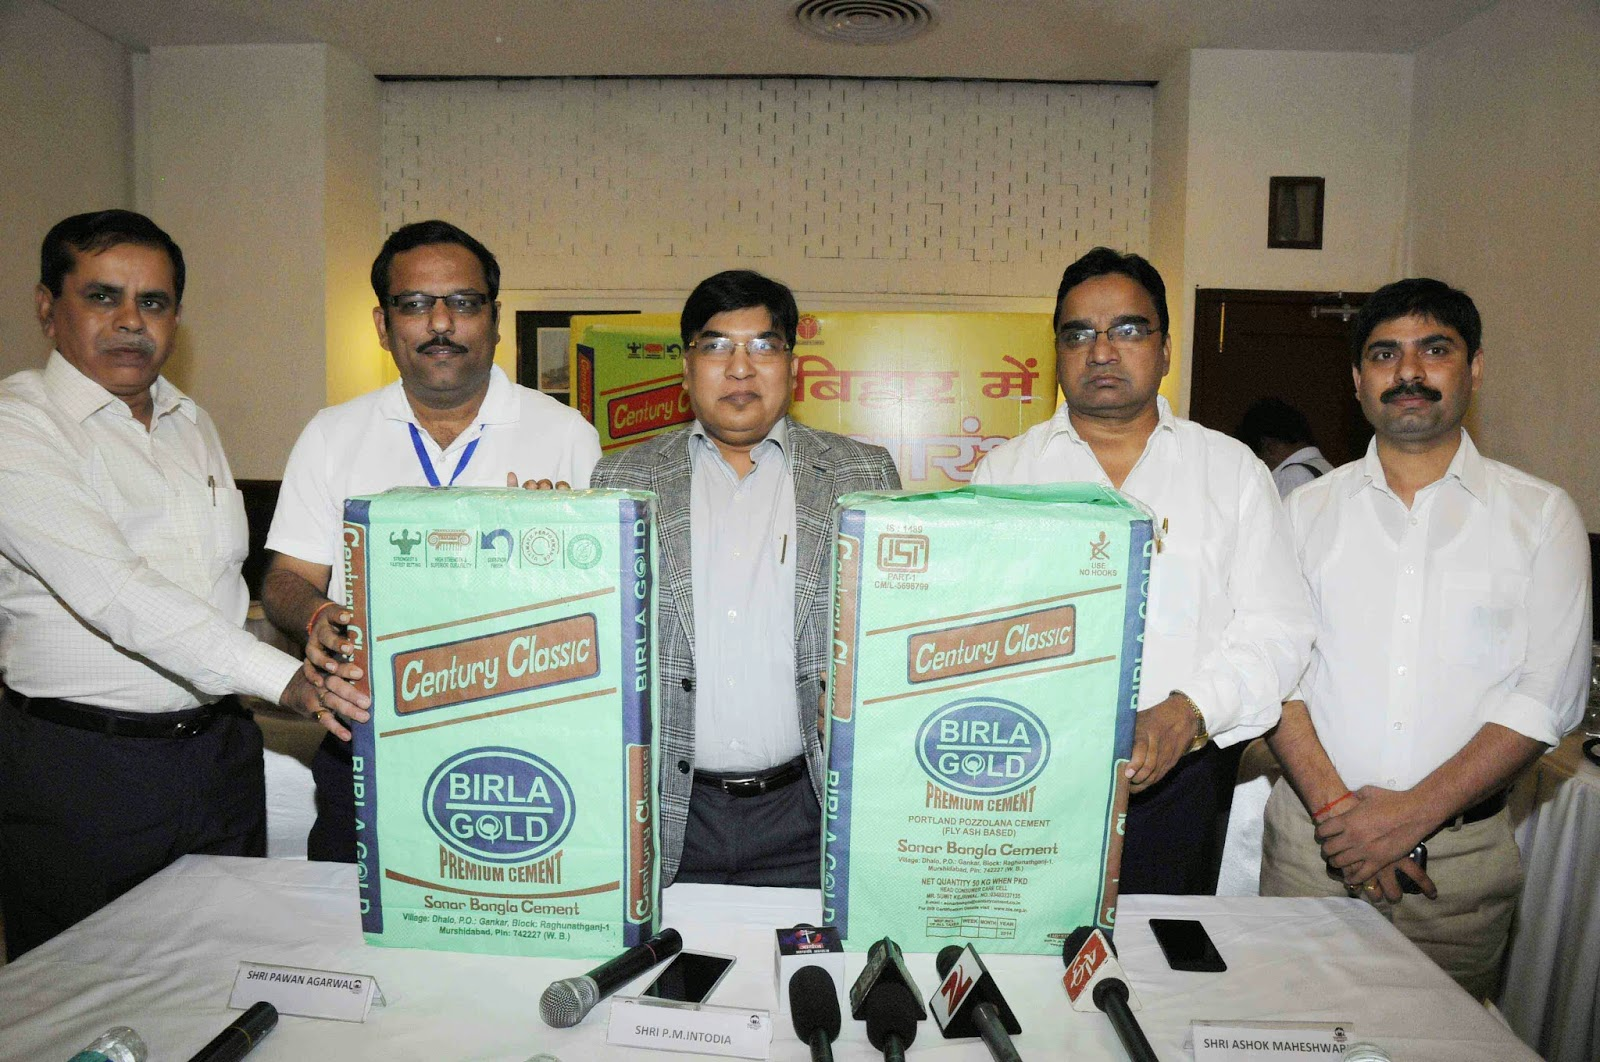 Birla Gold Cement : View patna century classic birla gold cement launched